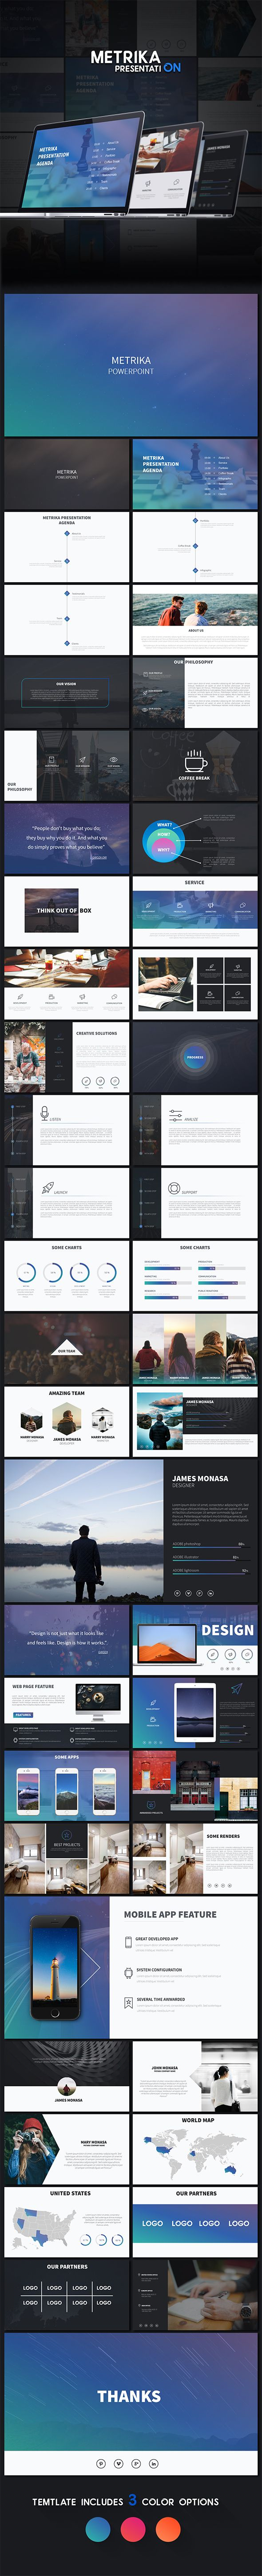 37 best business model canvas powerpoint templates images on metrika colorful powerpoint presentation business powerpoint templatesppt accmission